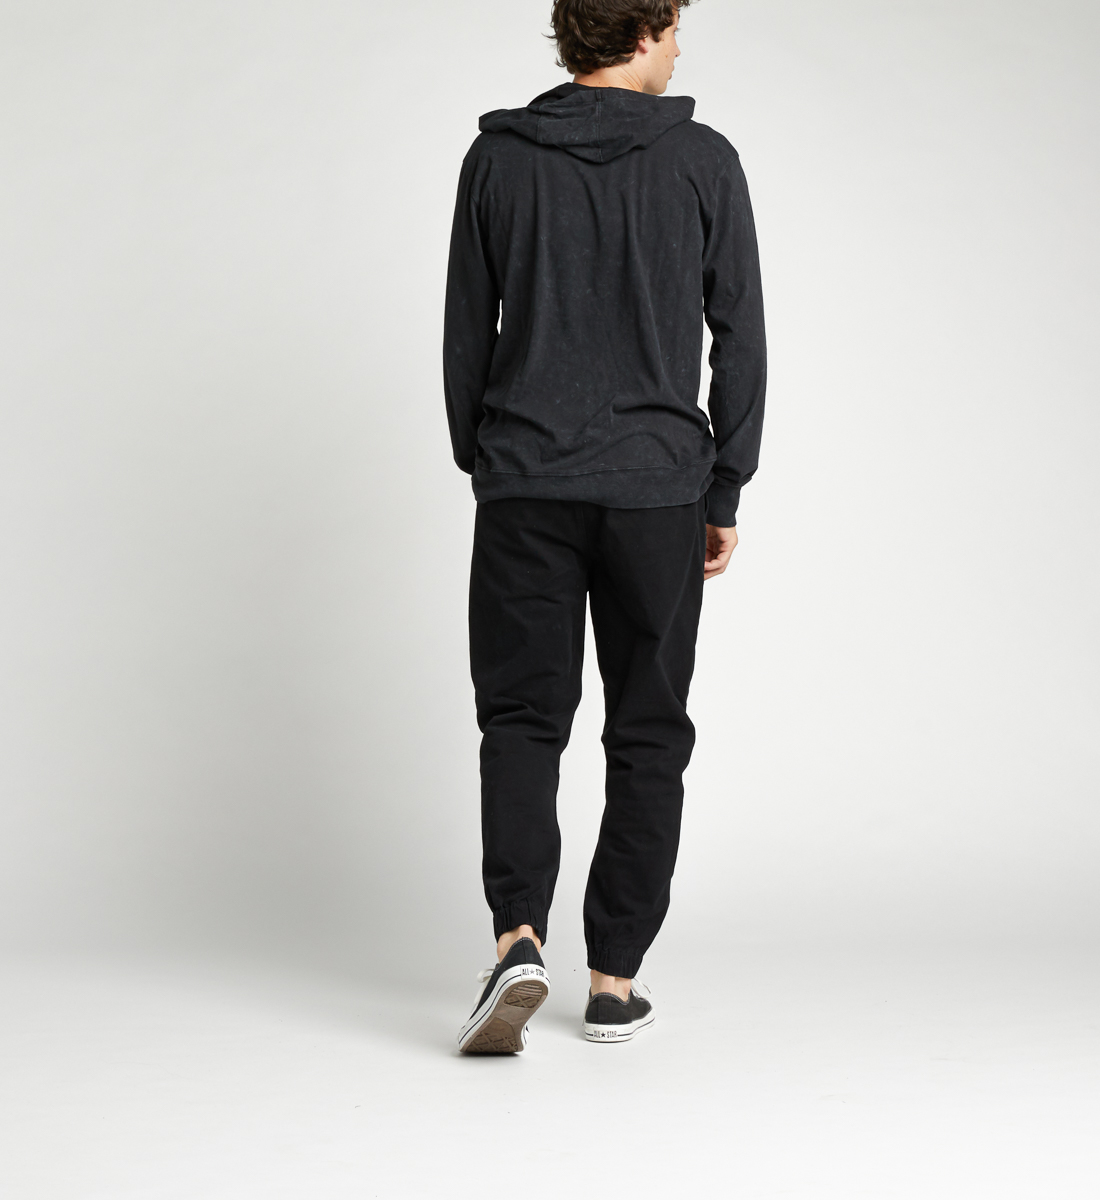 Kael Long-Sleeve Hoodie,Black Side